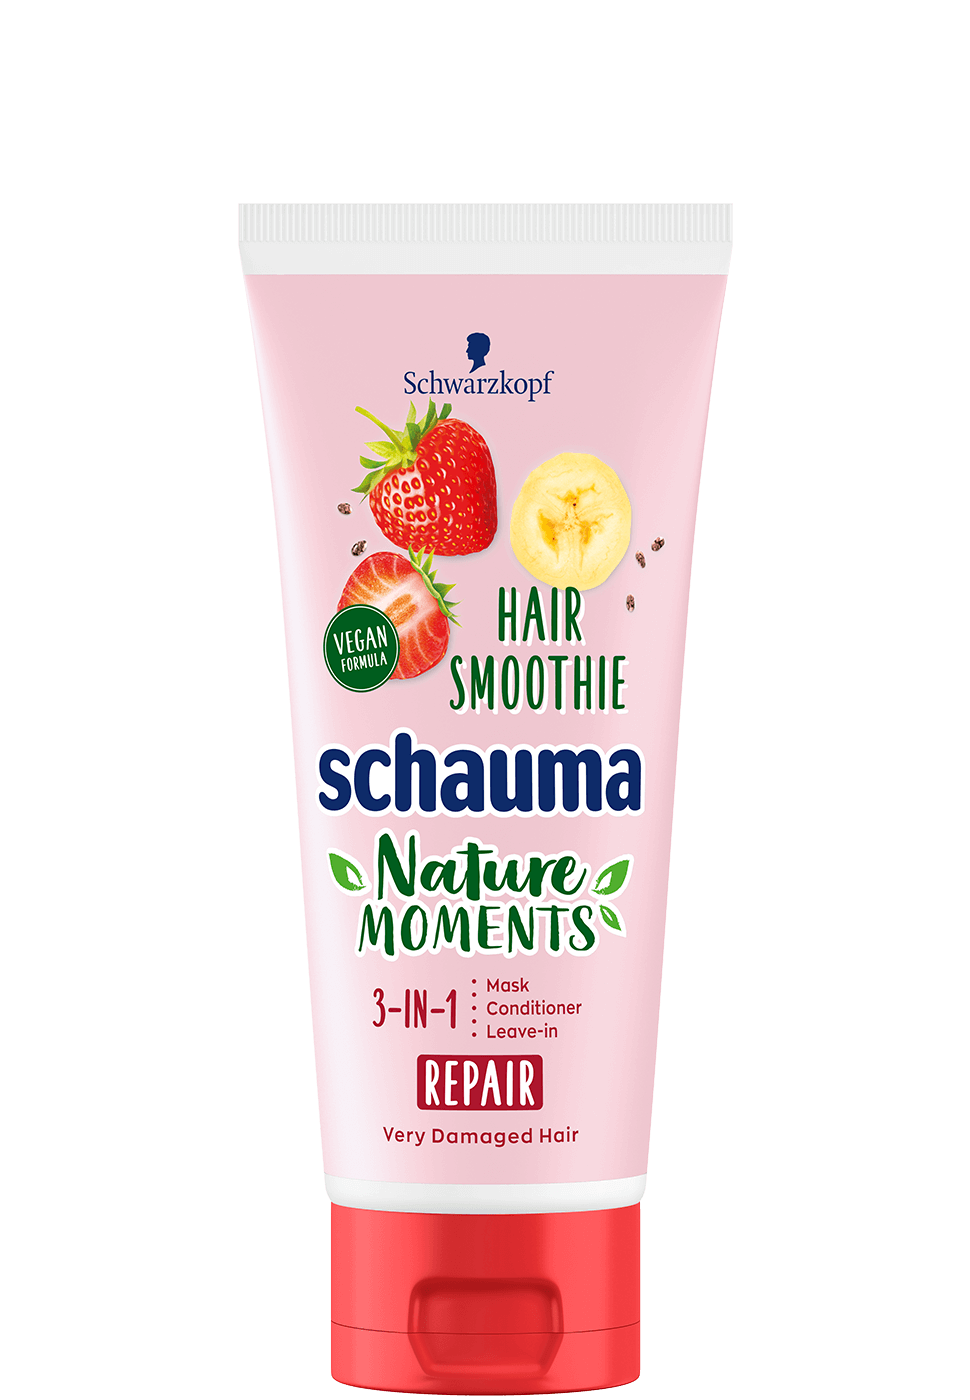 schauma_com_nature_moments_hair_smoothie_repair_970x1400